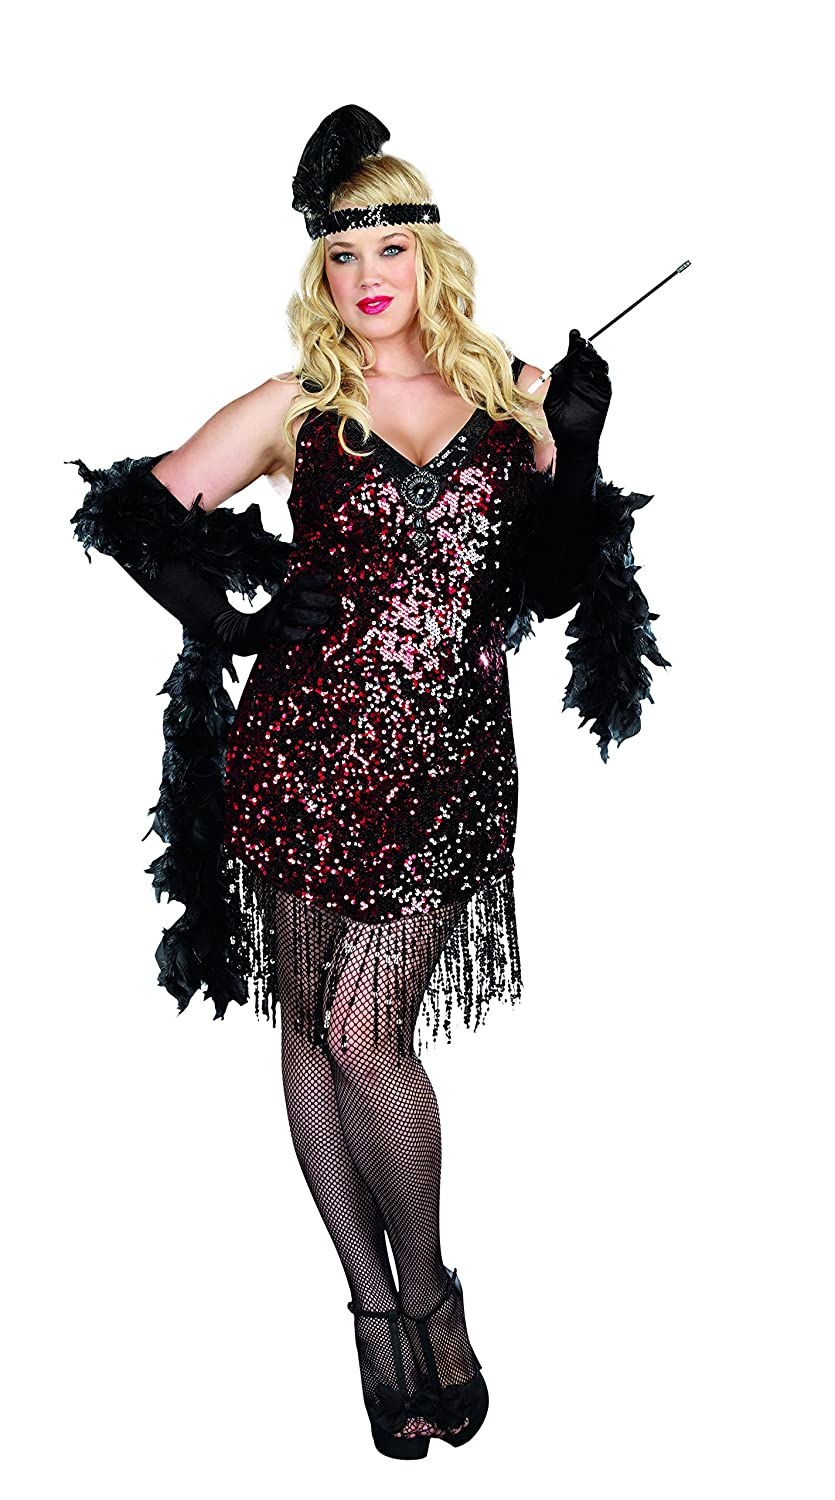 Roaring 20s Costumes- Flapper Costumes, Gangster Costumes Dreamgirl Womens Plus-Size Dames Like Us Costume $66.92 AT vintagedancer.com